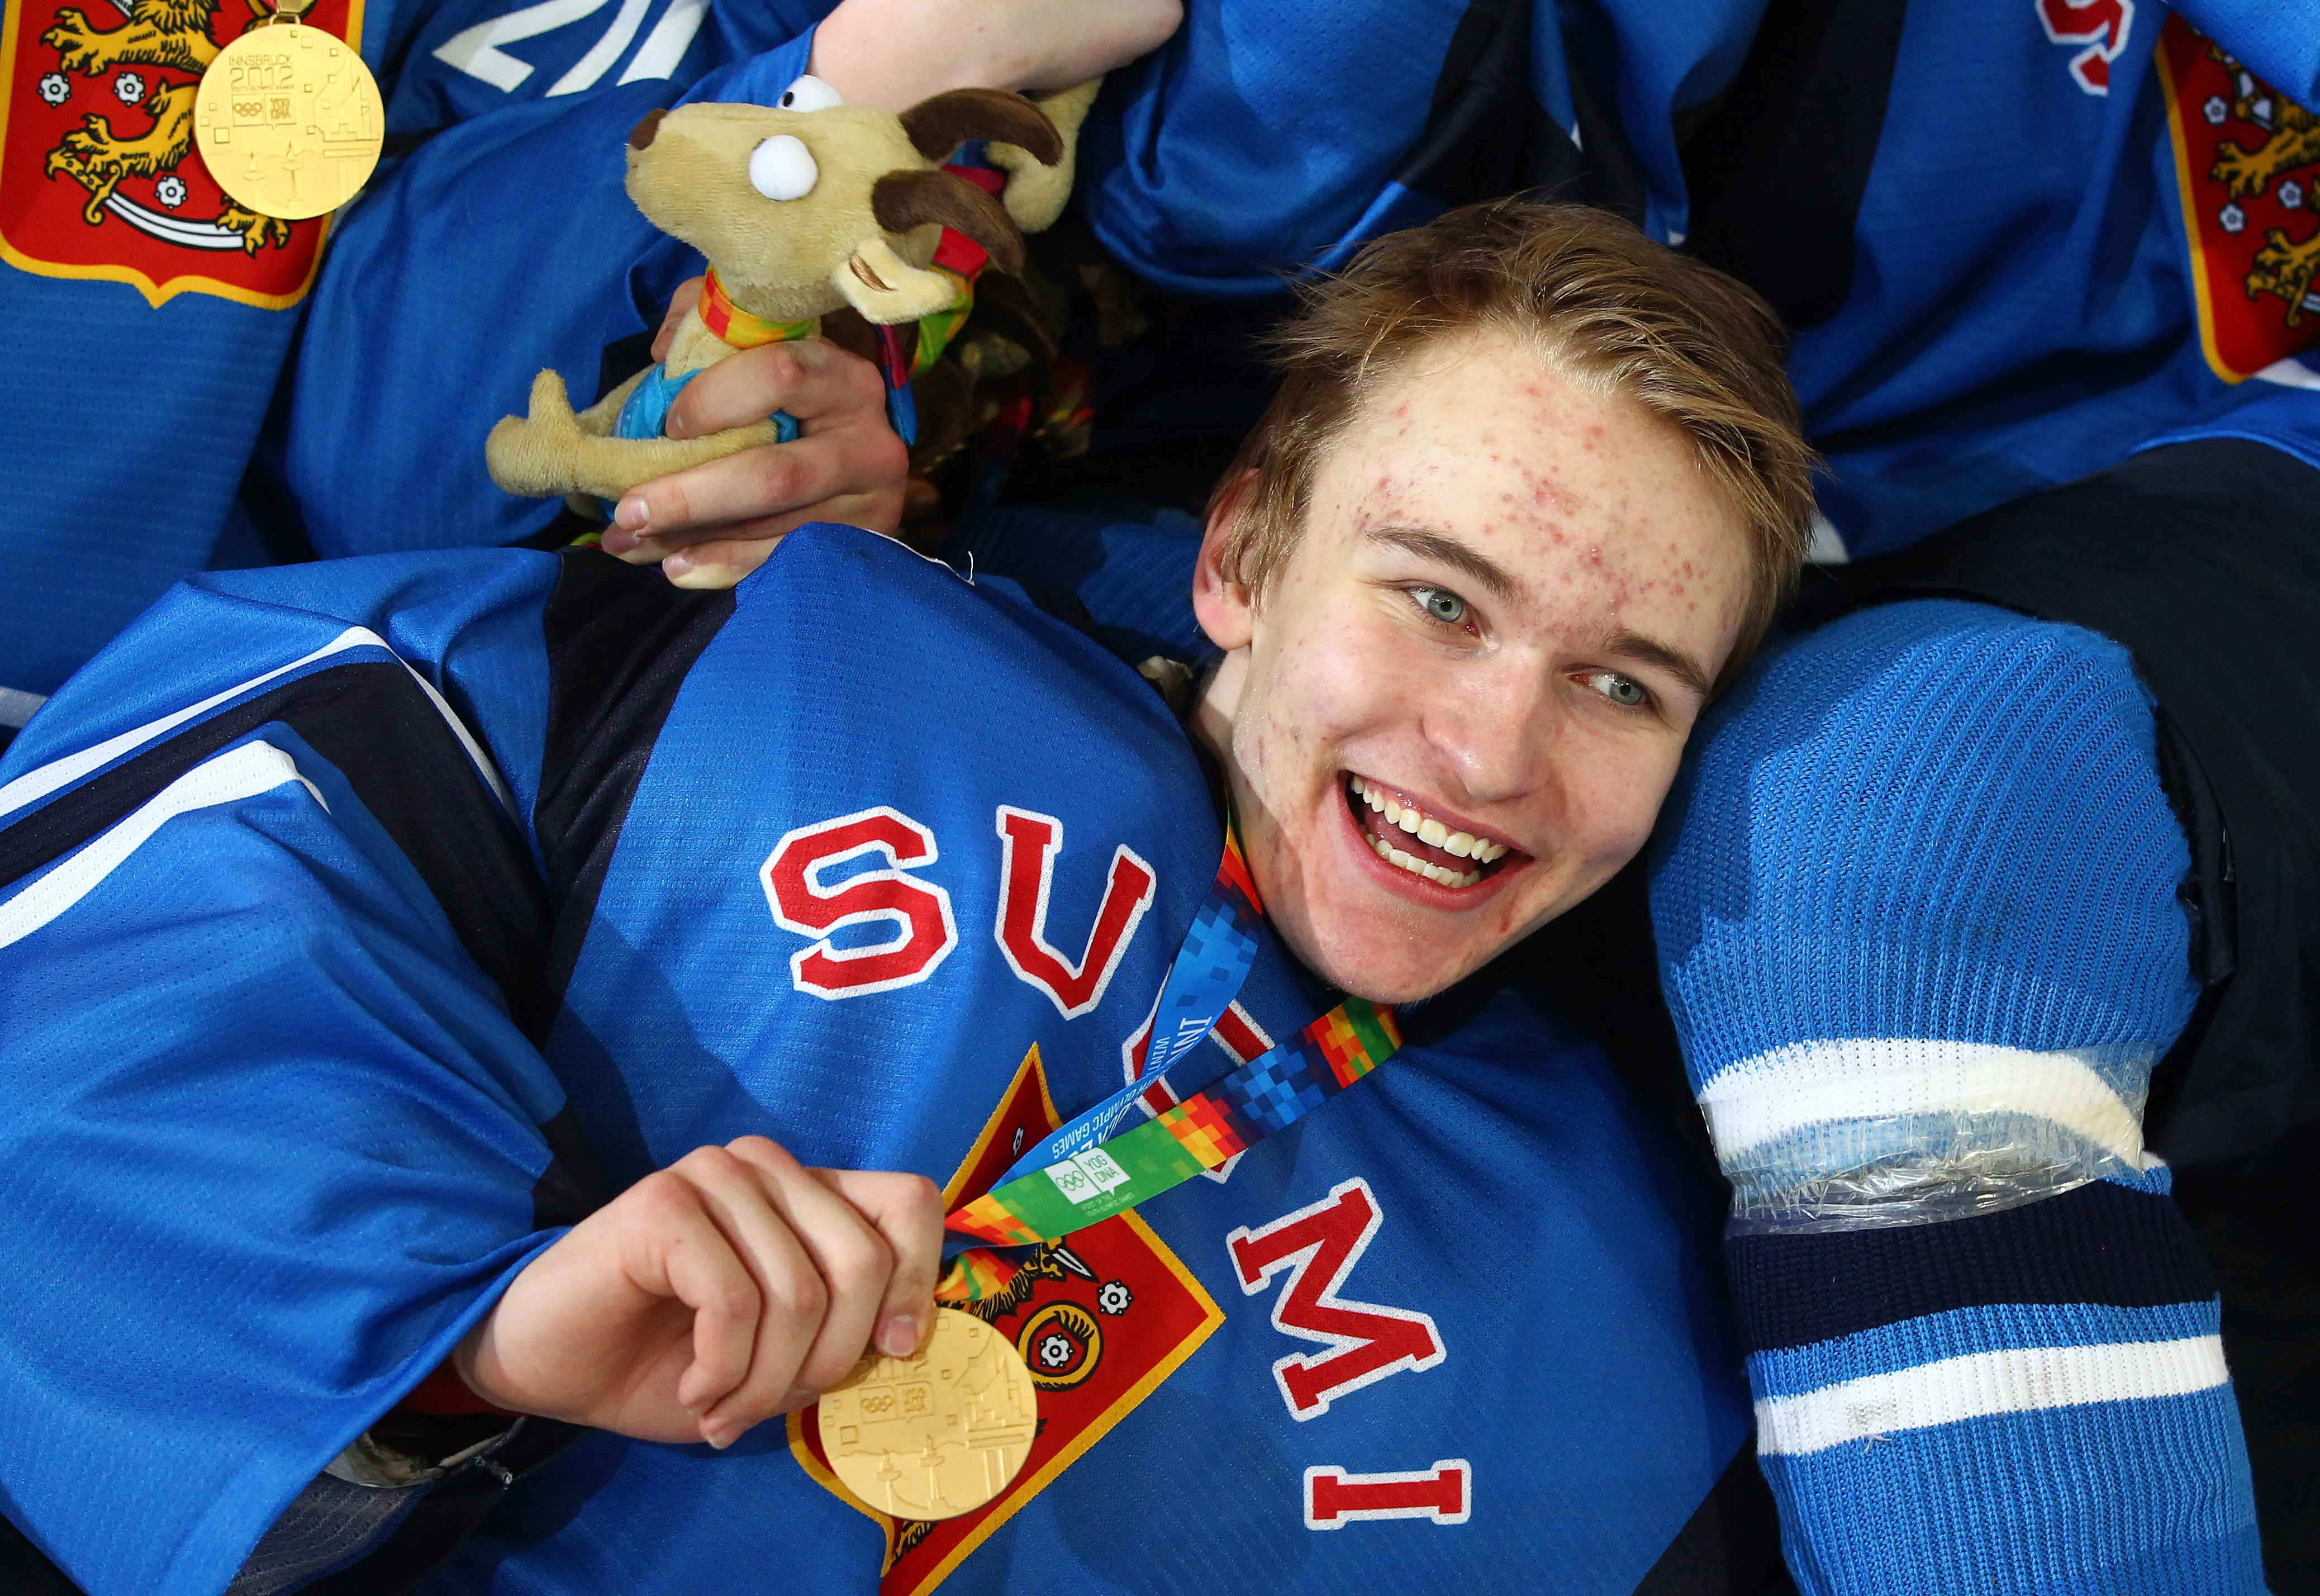 Winter Youth Olympic Games - Day Ten